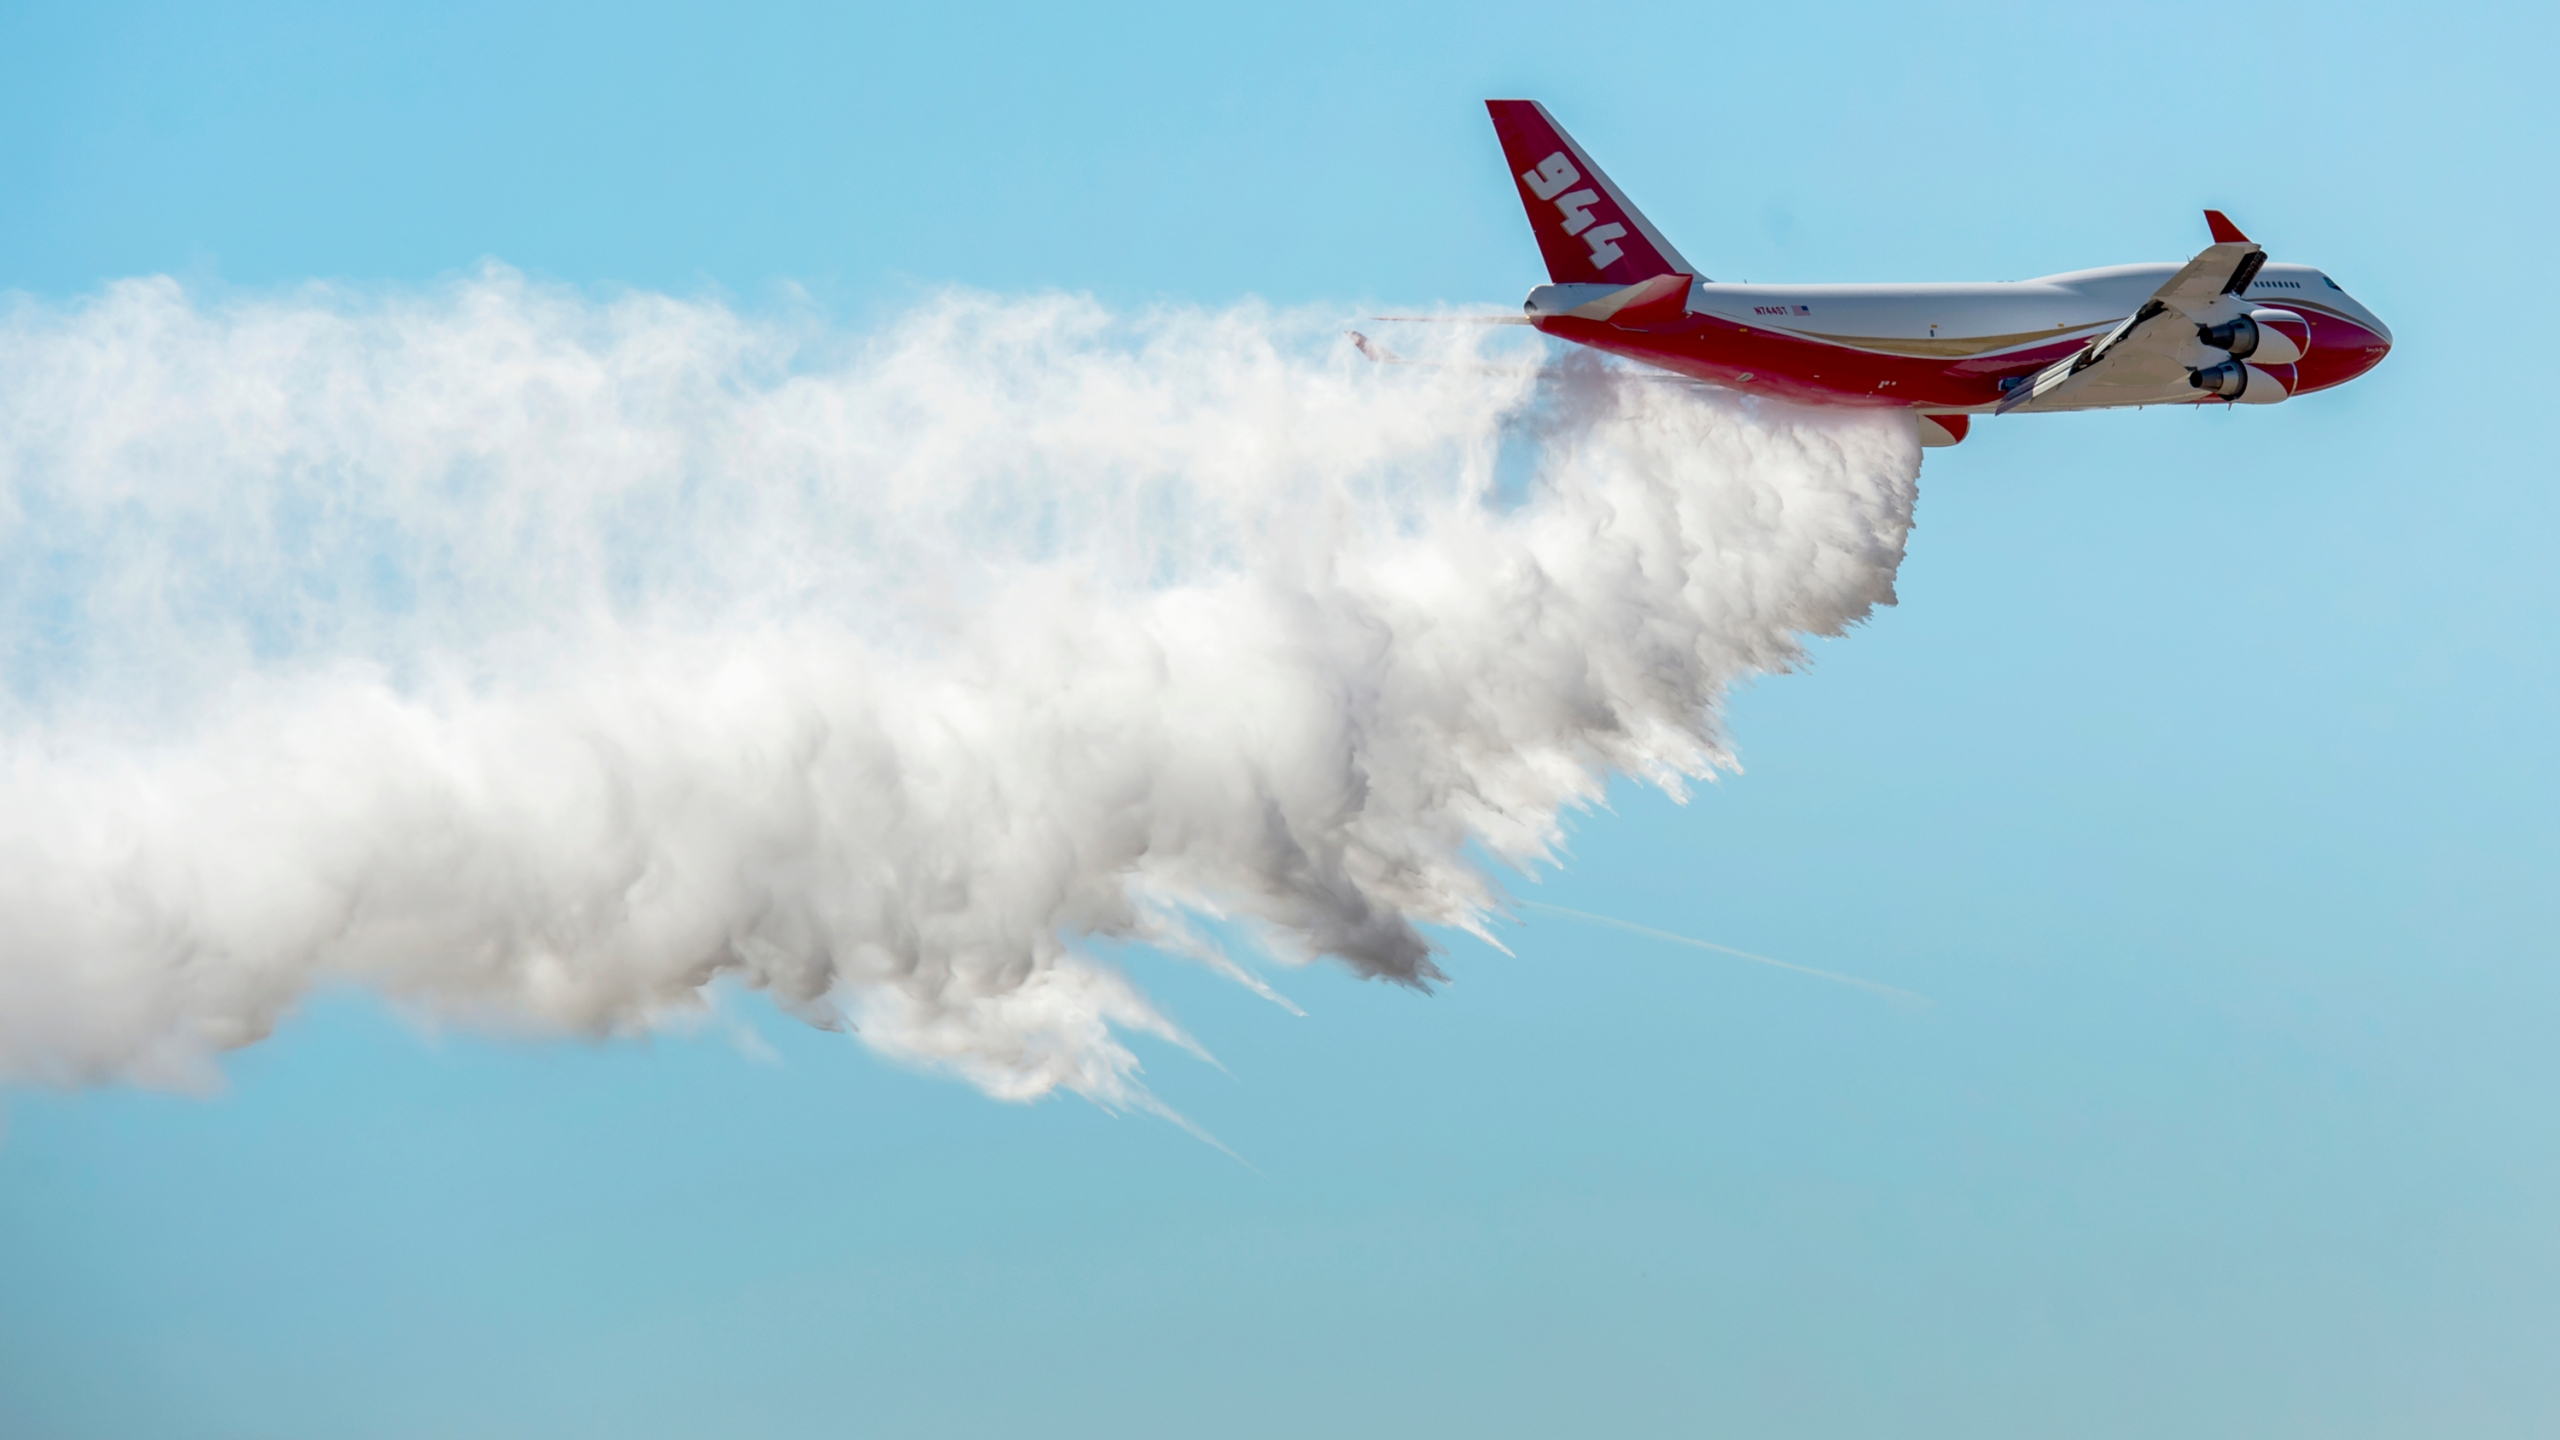 A Boeing 747-400 Global SuperTanker drops half a load of its 19,400-gallon capacity during a ceremony at Colorado Springs, Colo., on May 5, 2016. (Christian Murdock / The Gazette via Associated Press)